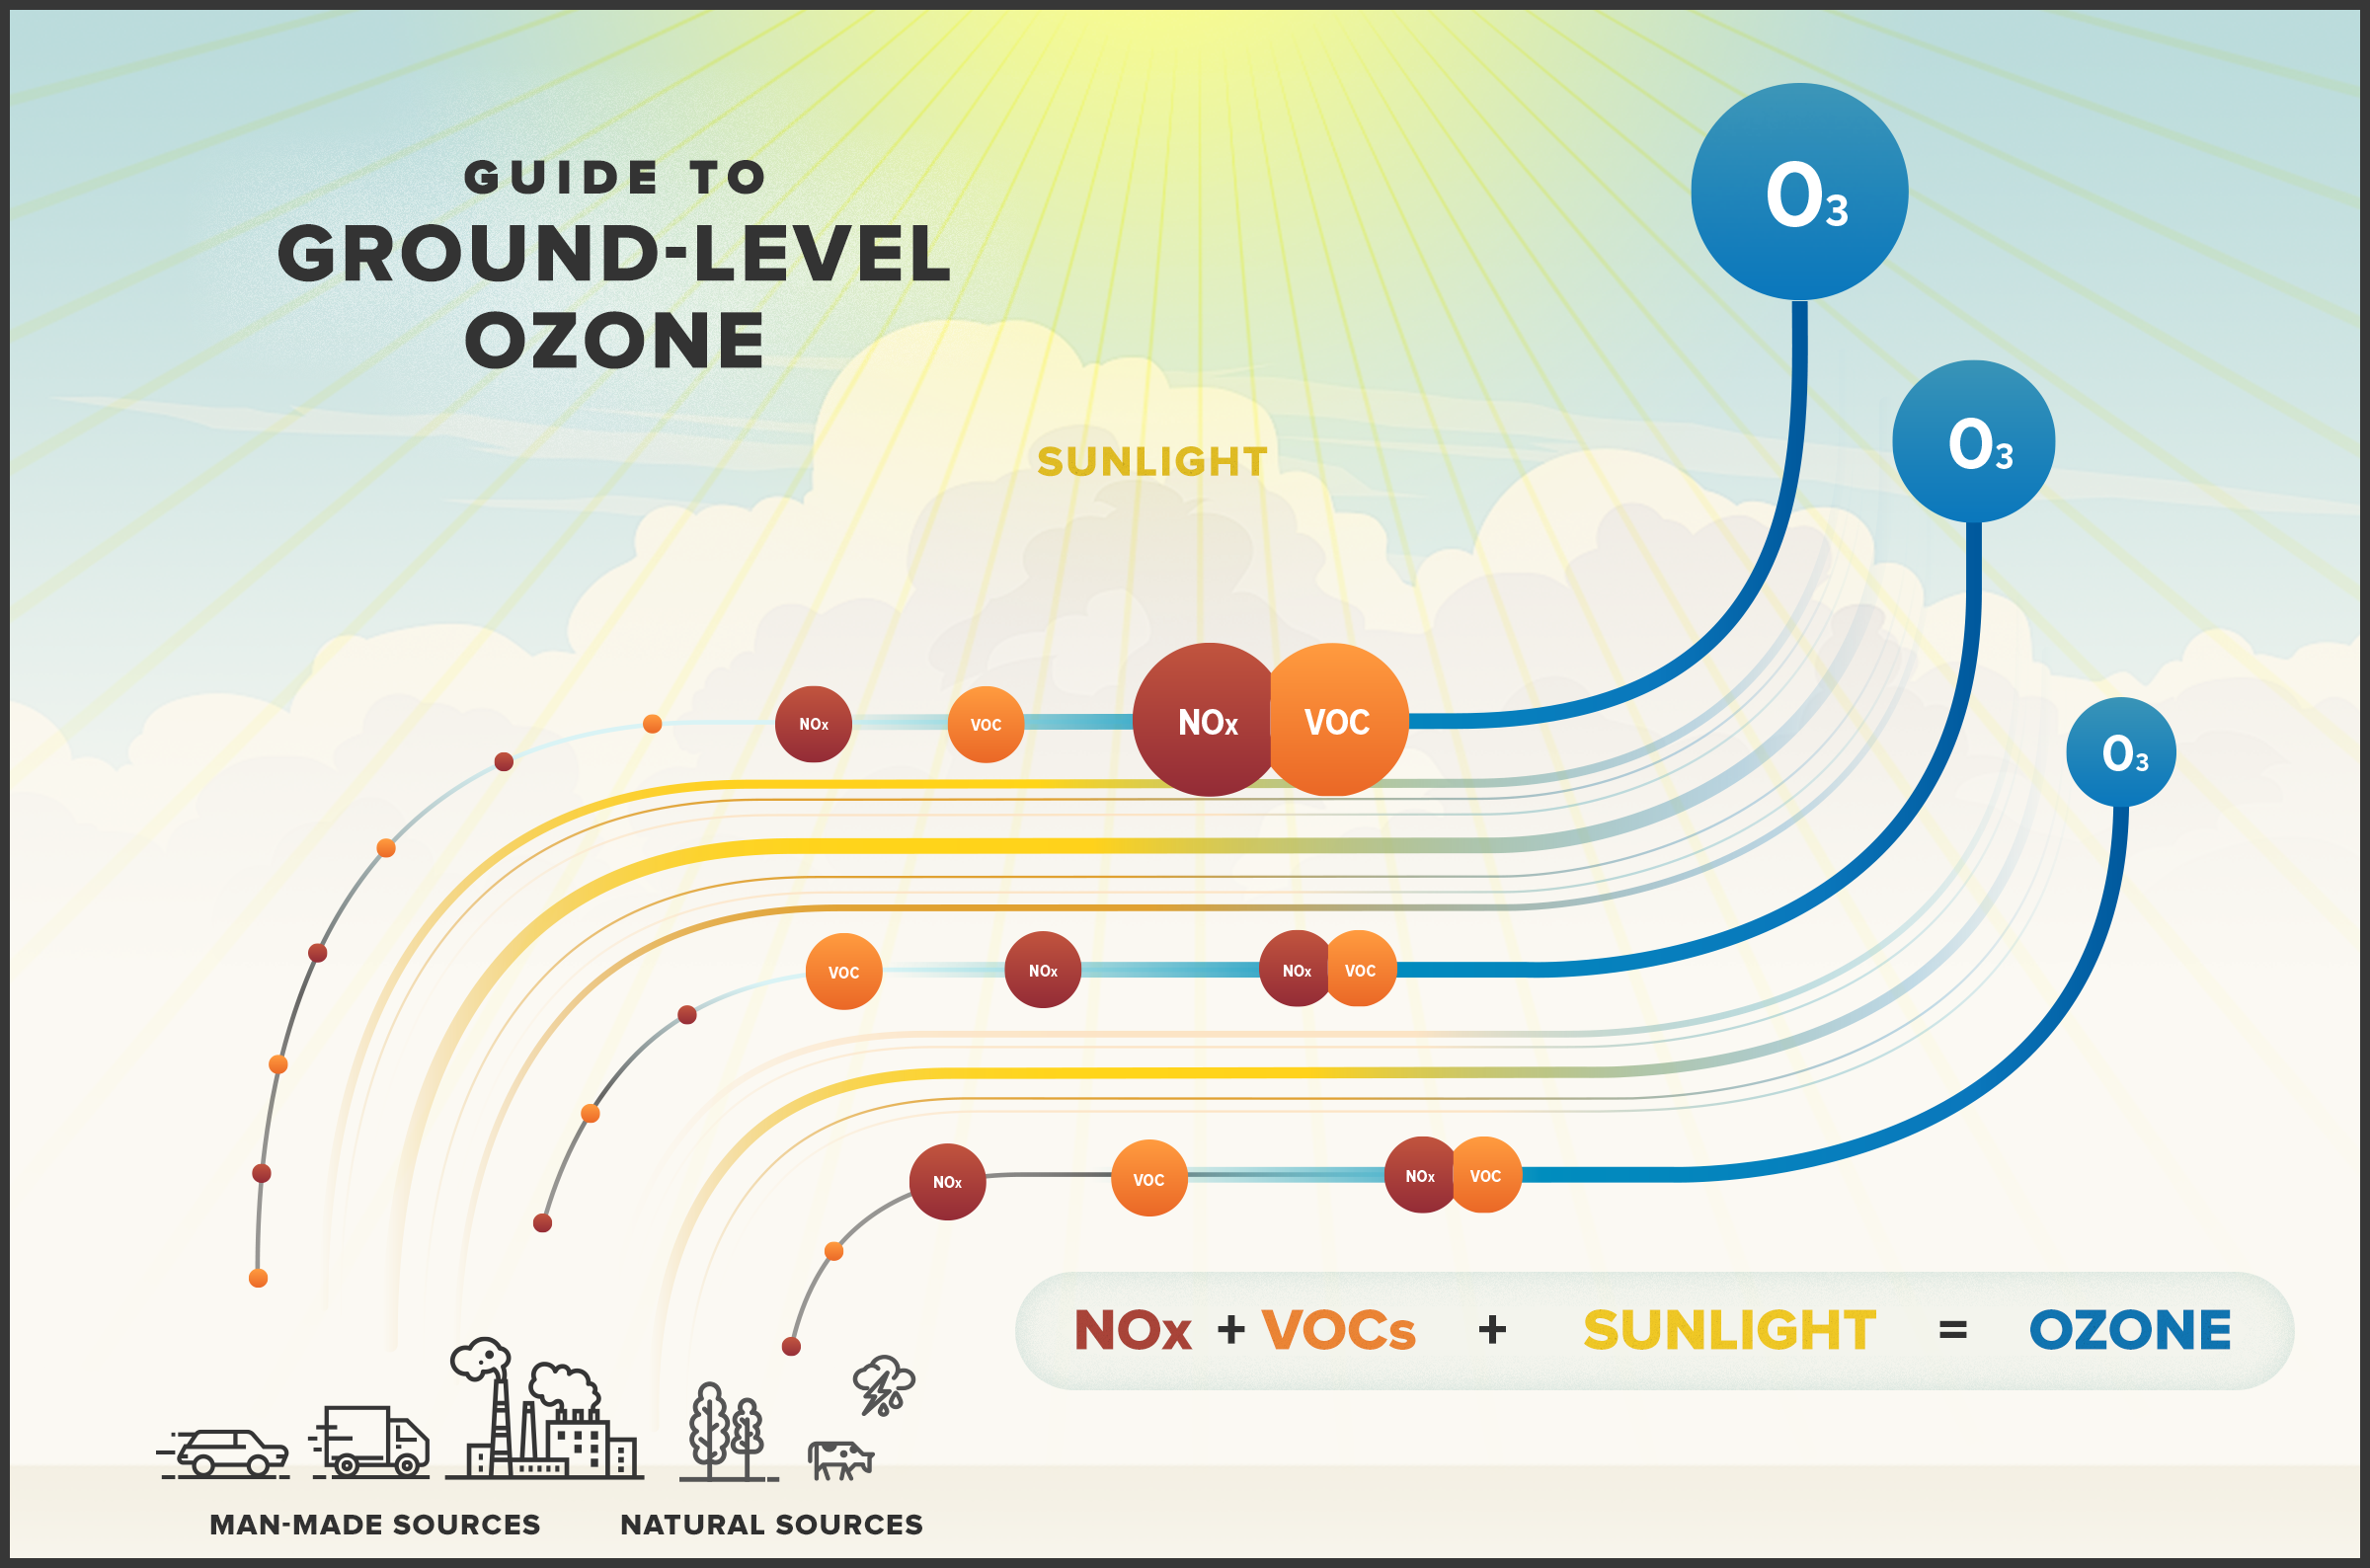 A .png of the Guide to Ground-Level Ozone.